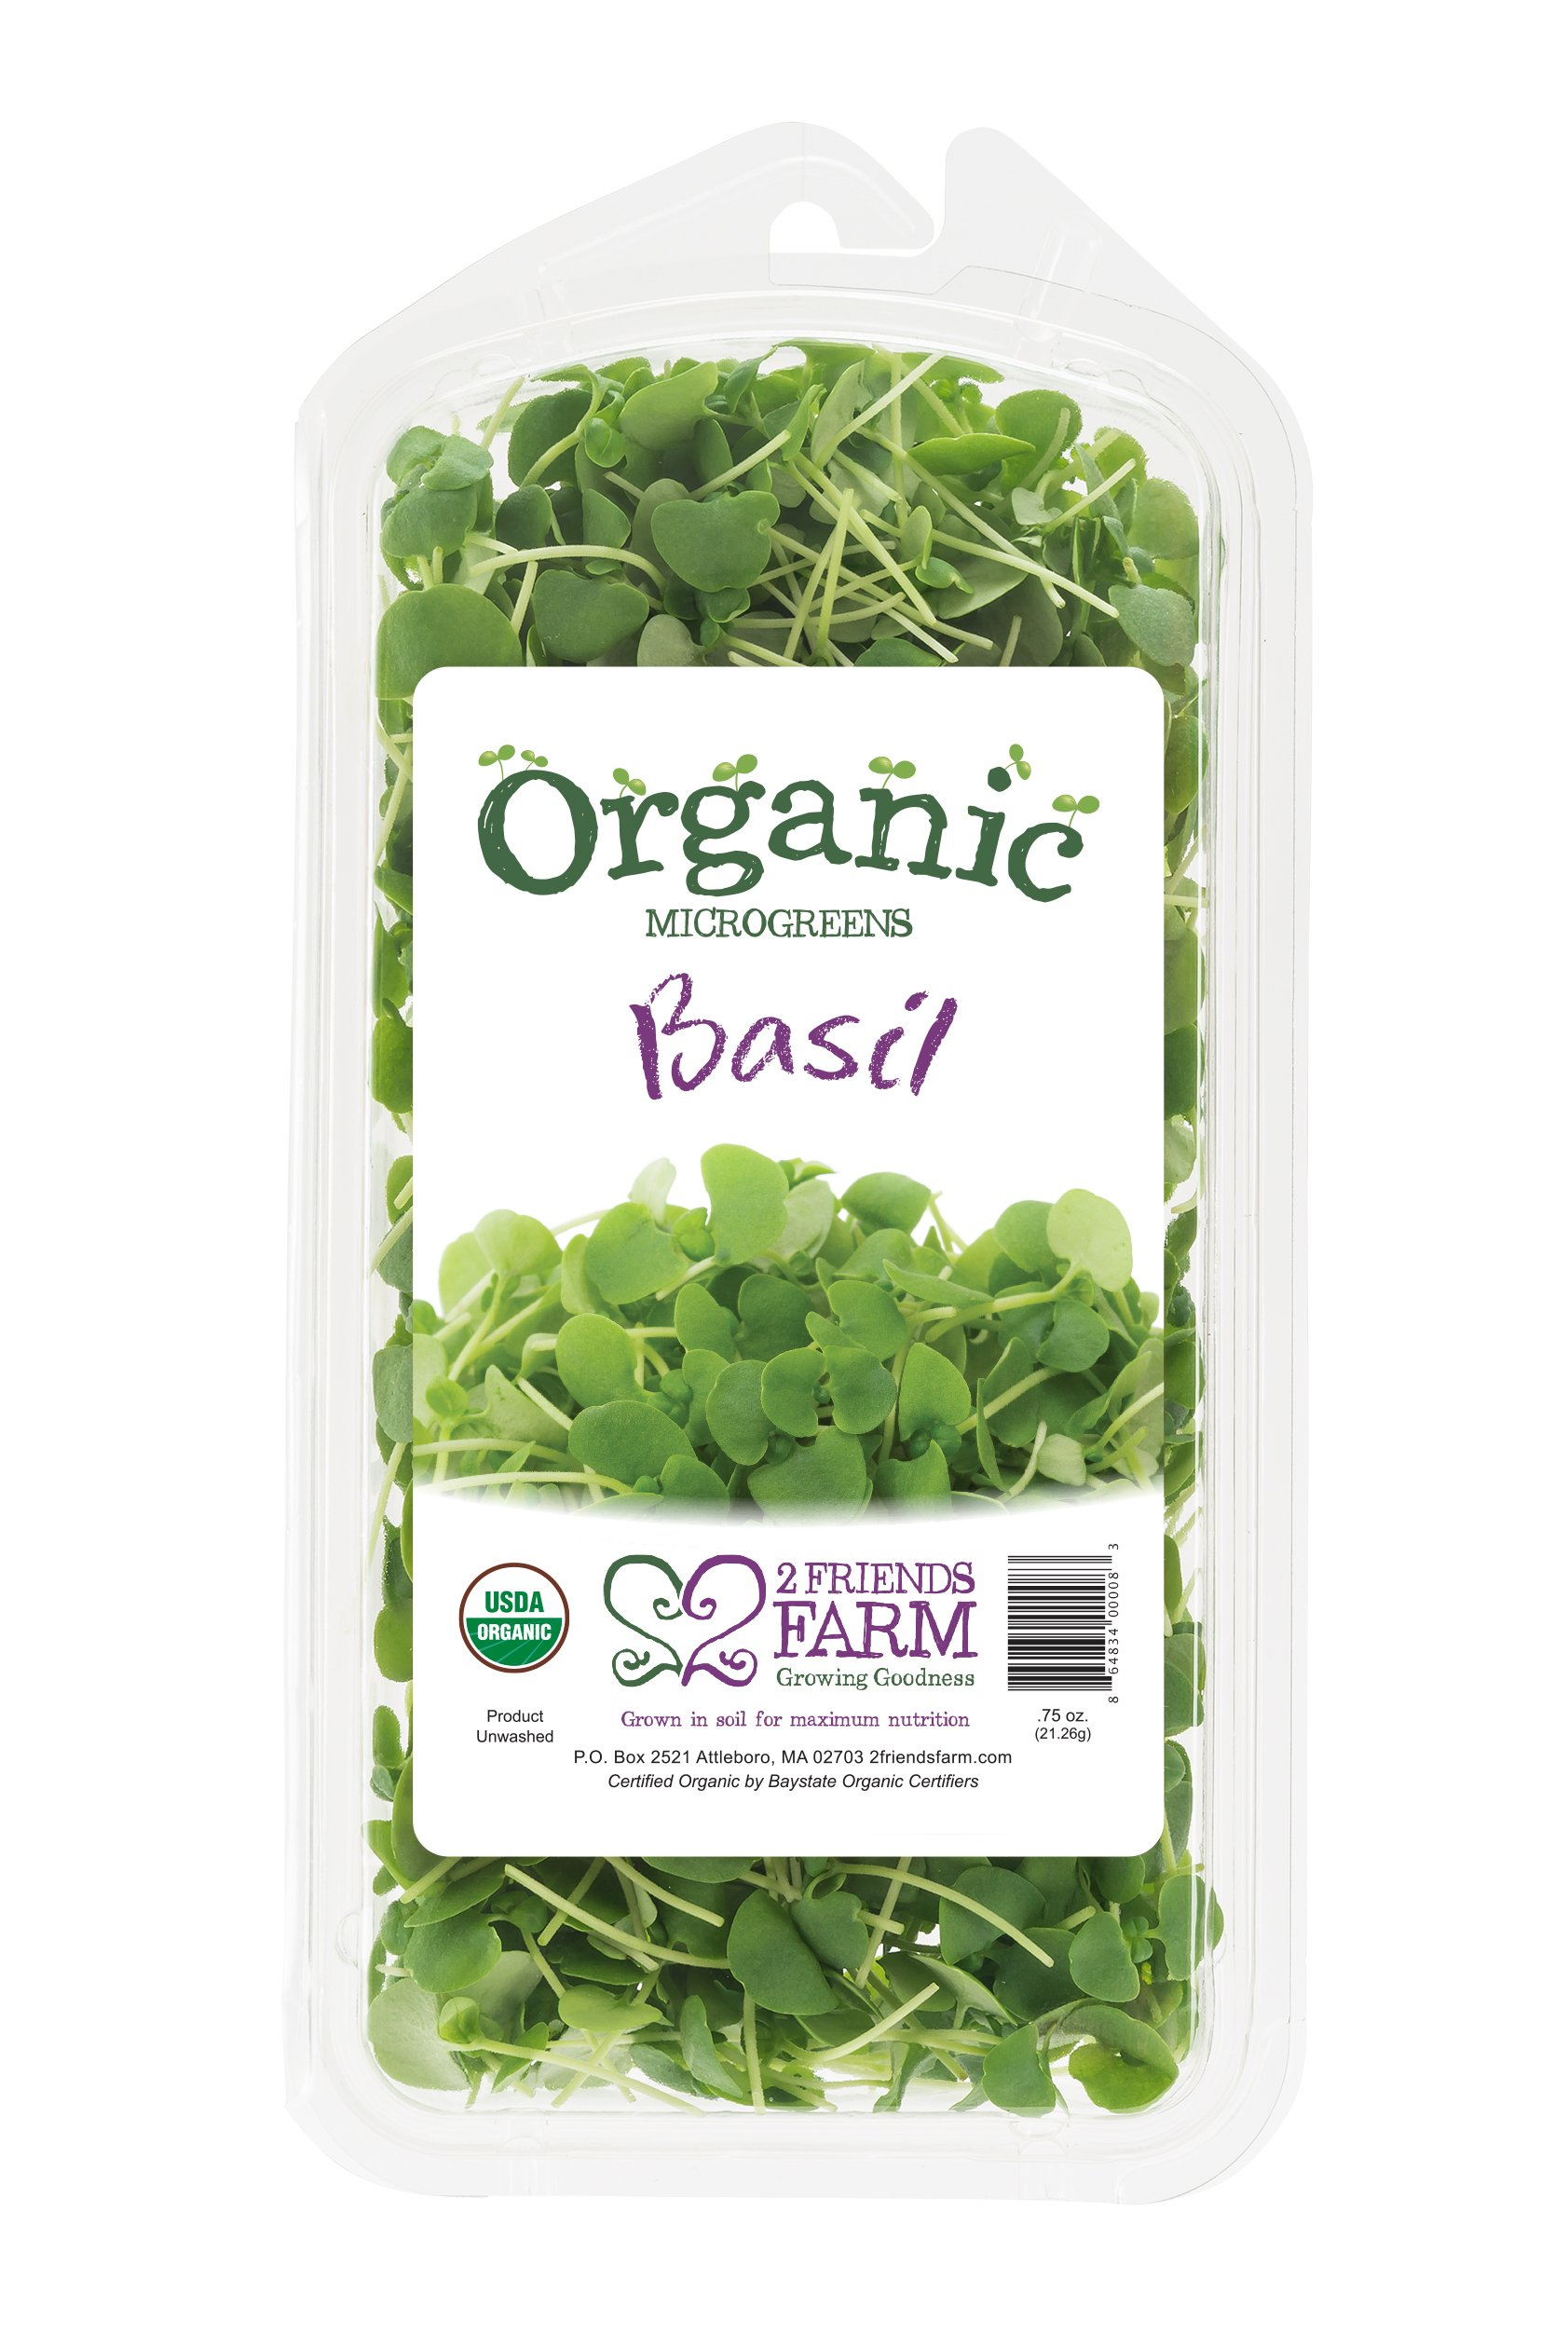 2 Friends Farm Local Northeast Organic Basil Microgreens .75oz